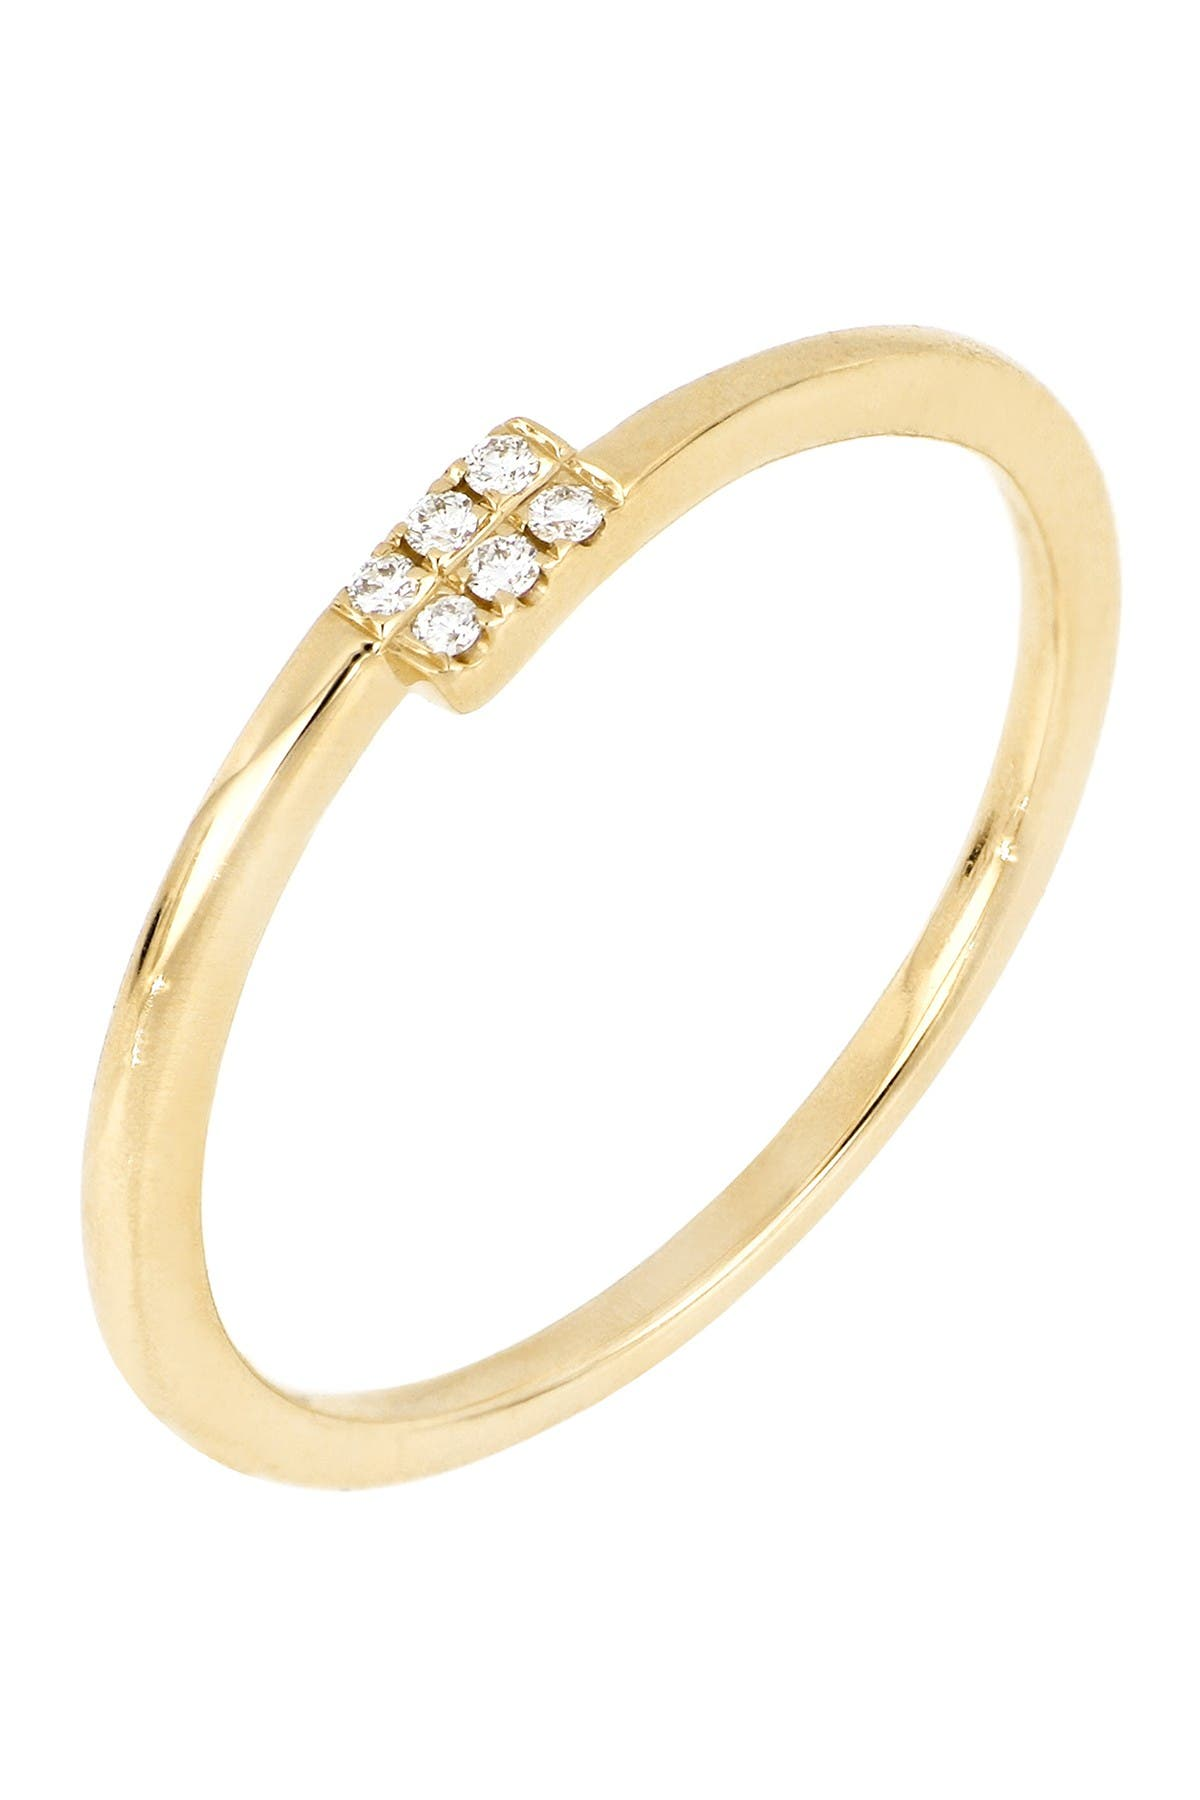 Image of Bony Levy 18K Yellow Gold Diamond Overlap Stackable Ring - 0.02 ctw